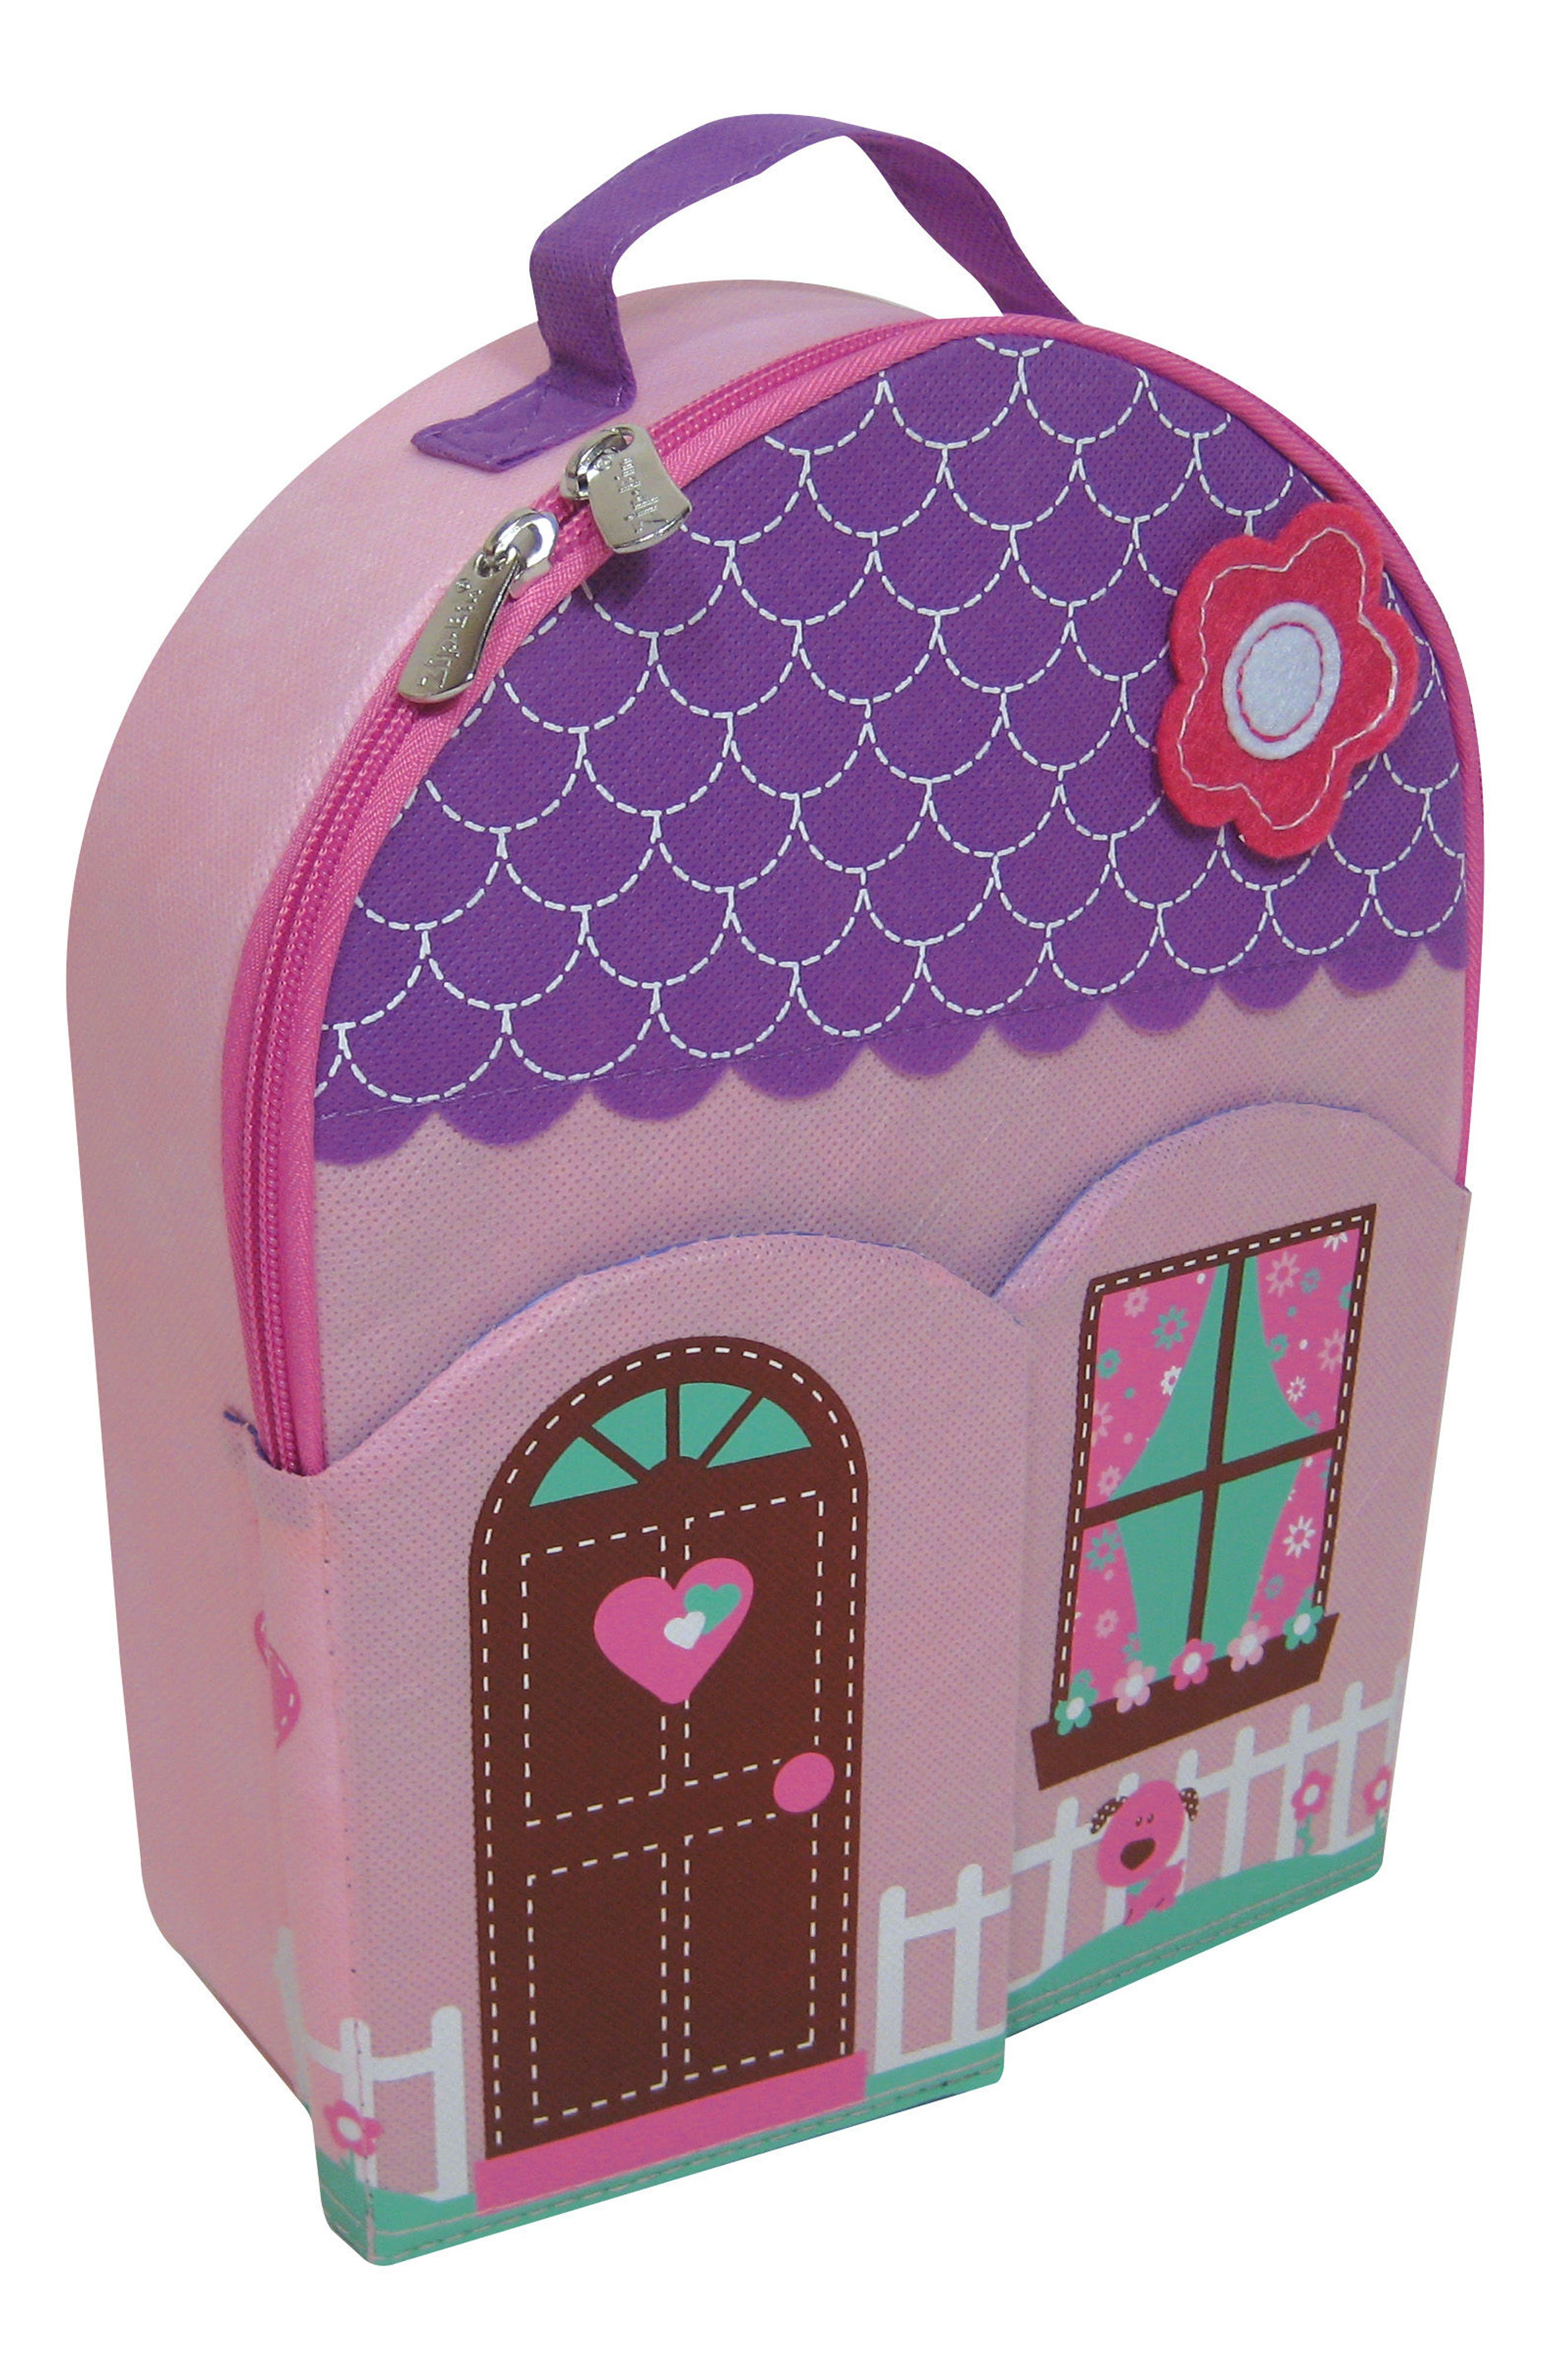 Neat Oh! Everyday Princess Doll & Dollhouse Backpack Set,                             Main thumbnail 1, color,                             650